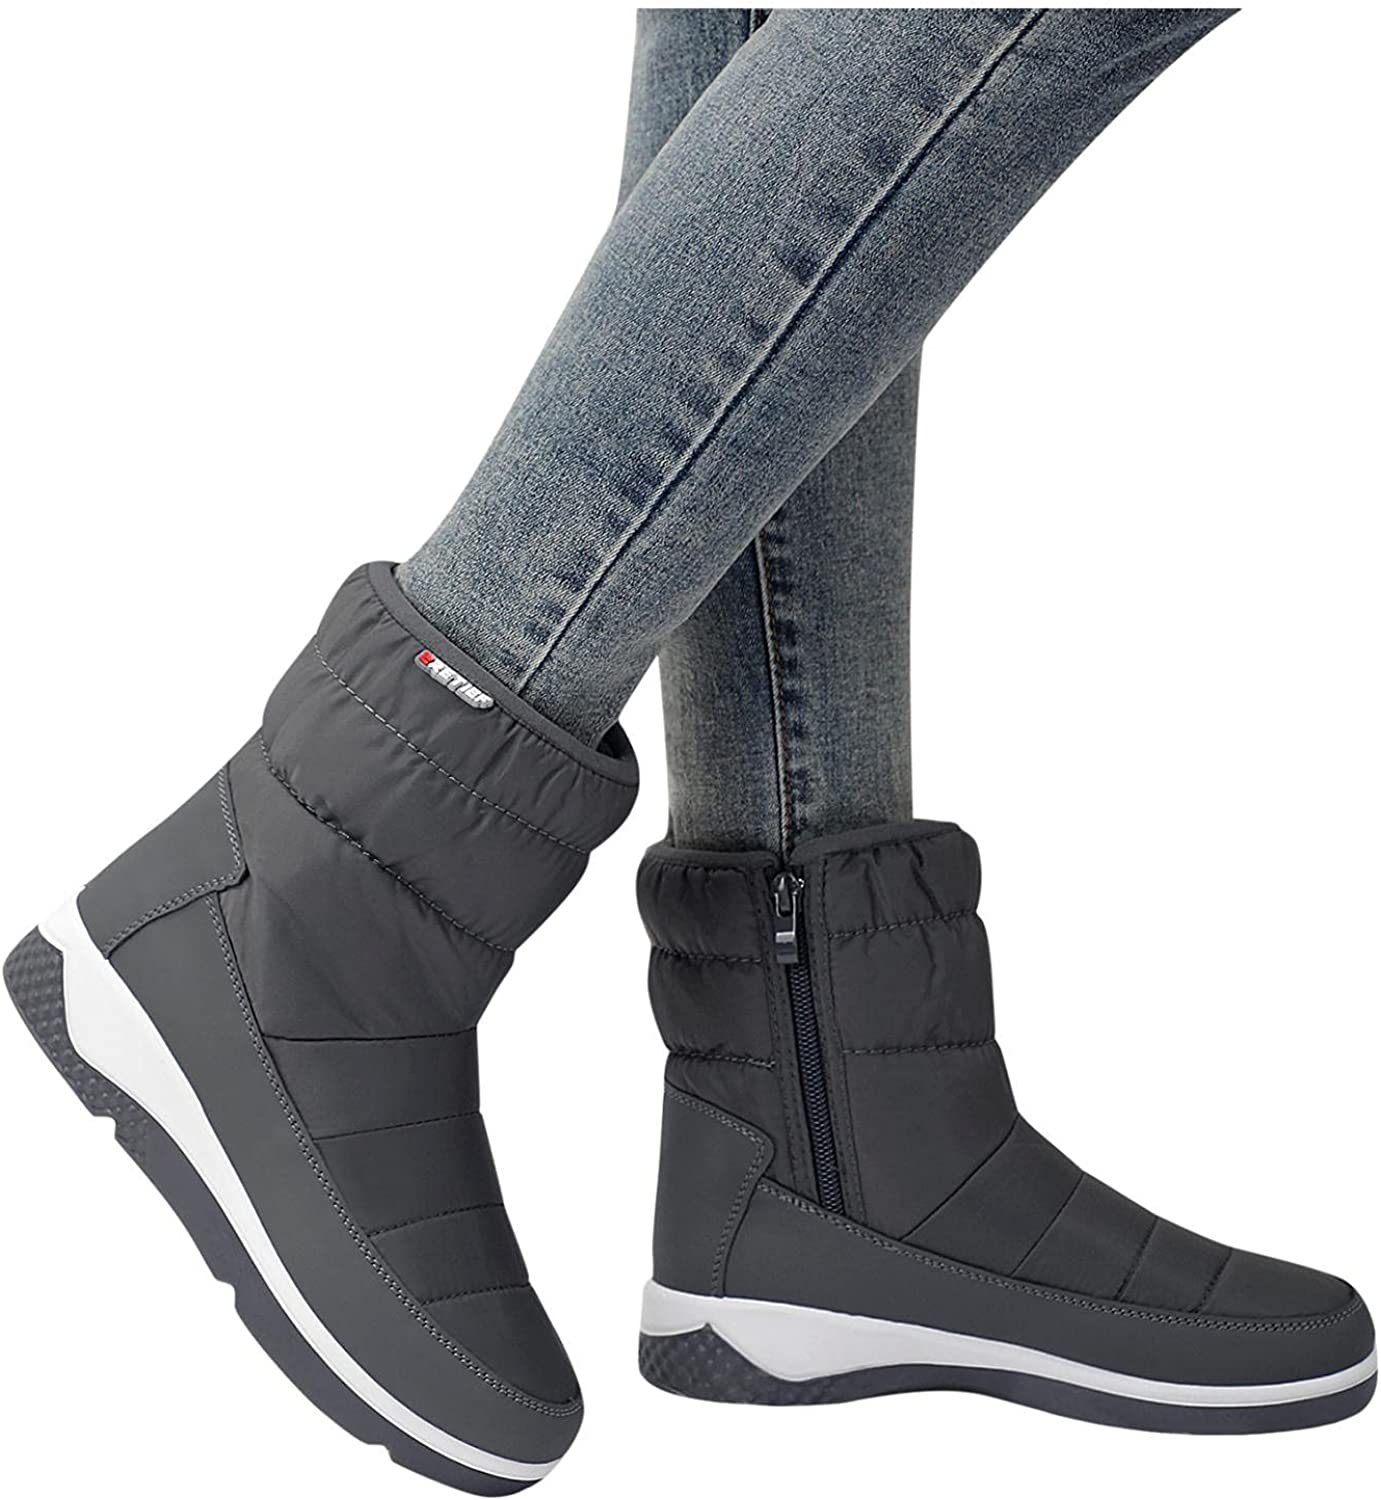 AODONG Winter Boots for Women,Winter Waterproof Ankle Bootie Ant